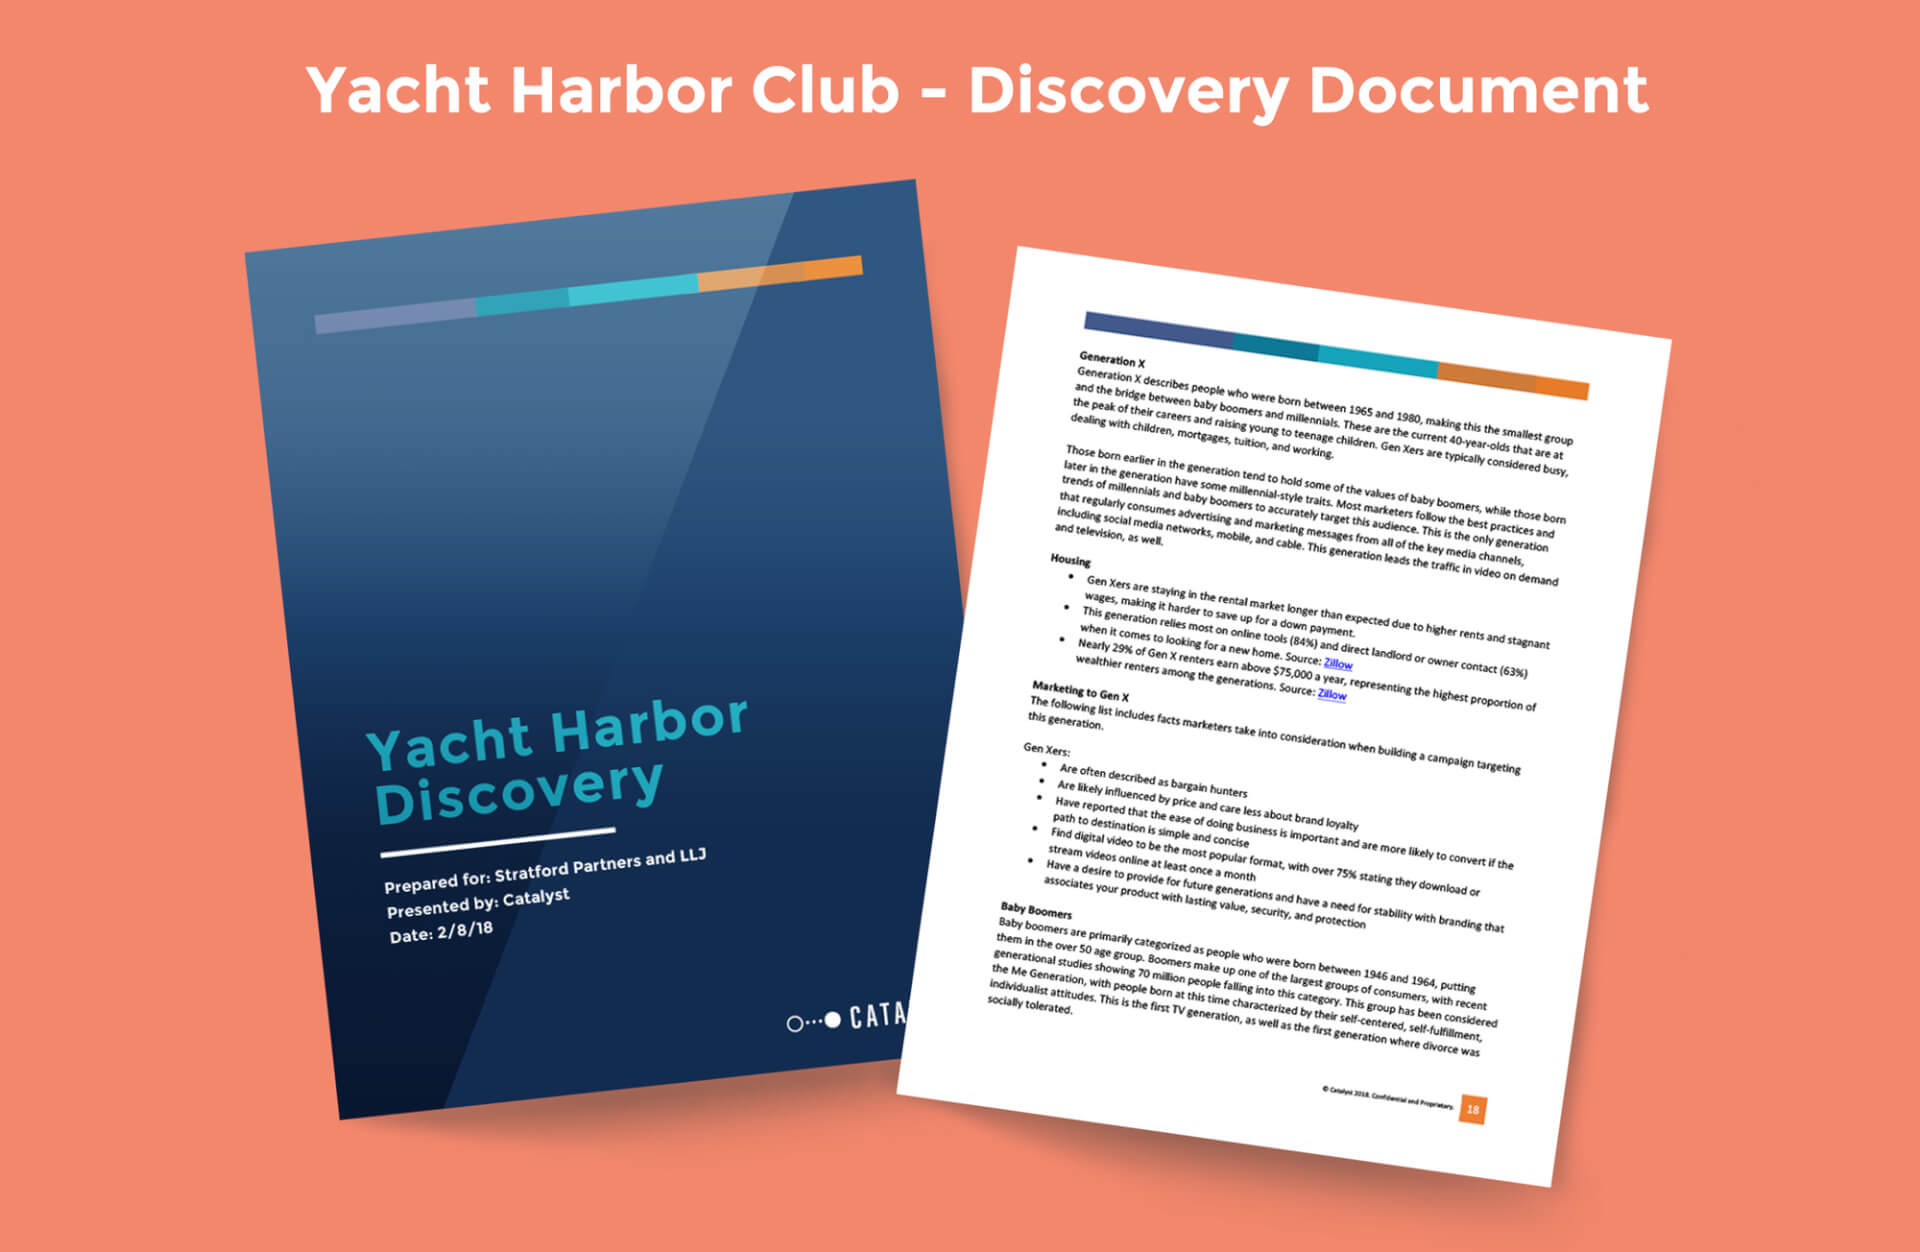 Yacht Harbor Club Discovery Document